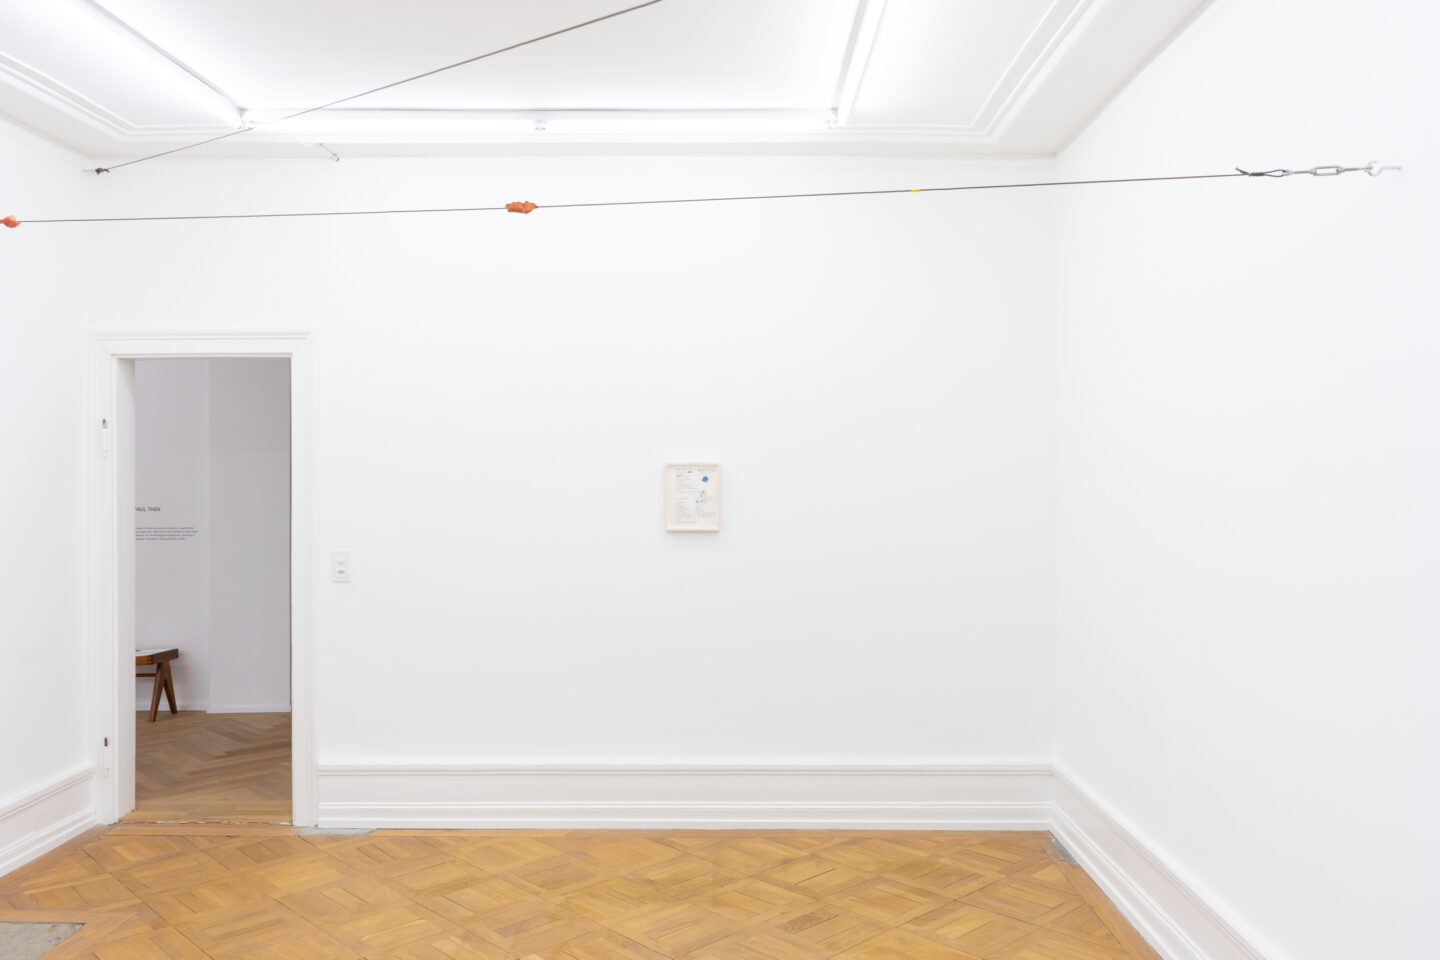 Exhibition View Peter Hujar & Paul Thek Joint Exhibition at Mai 36 Galerie, Zurich, 2020 / Courtesy: Mai 36 Galerie, Zurich